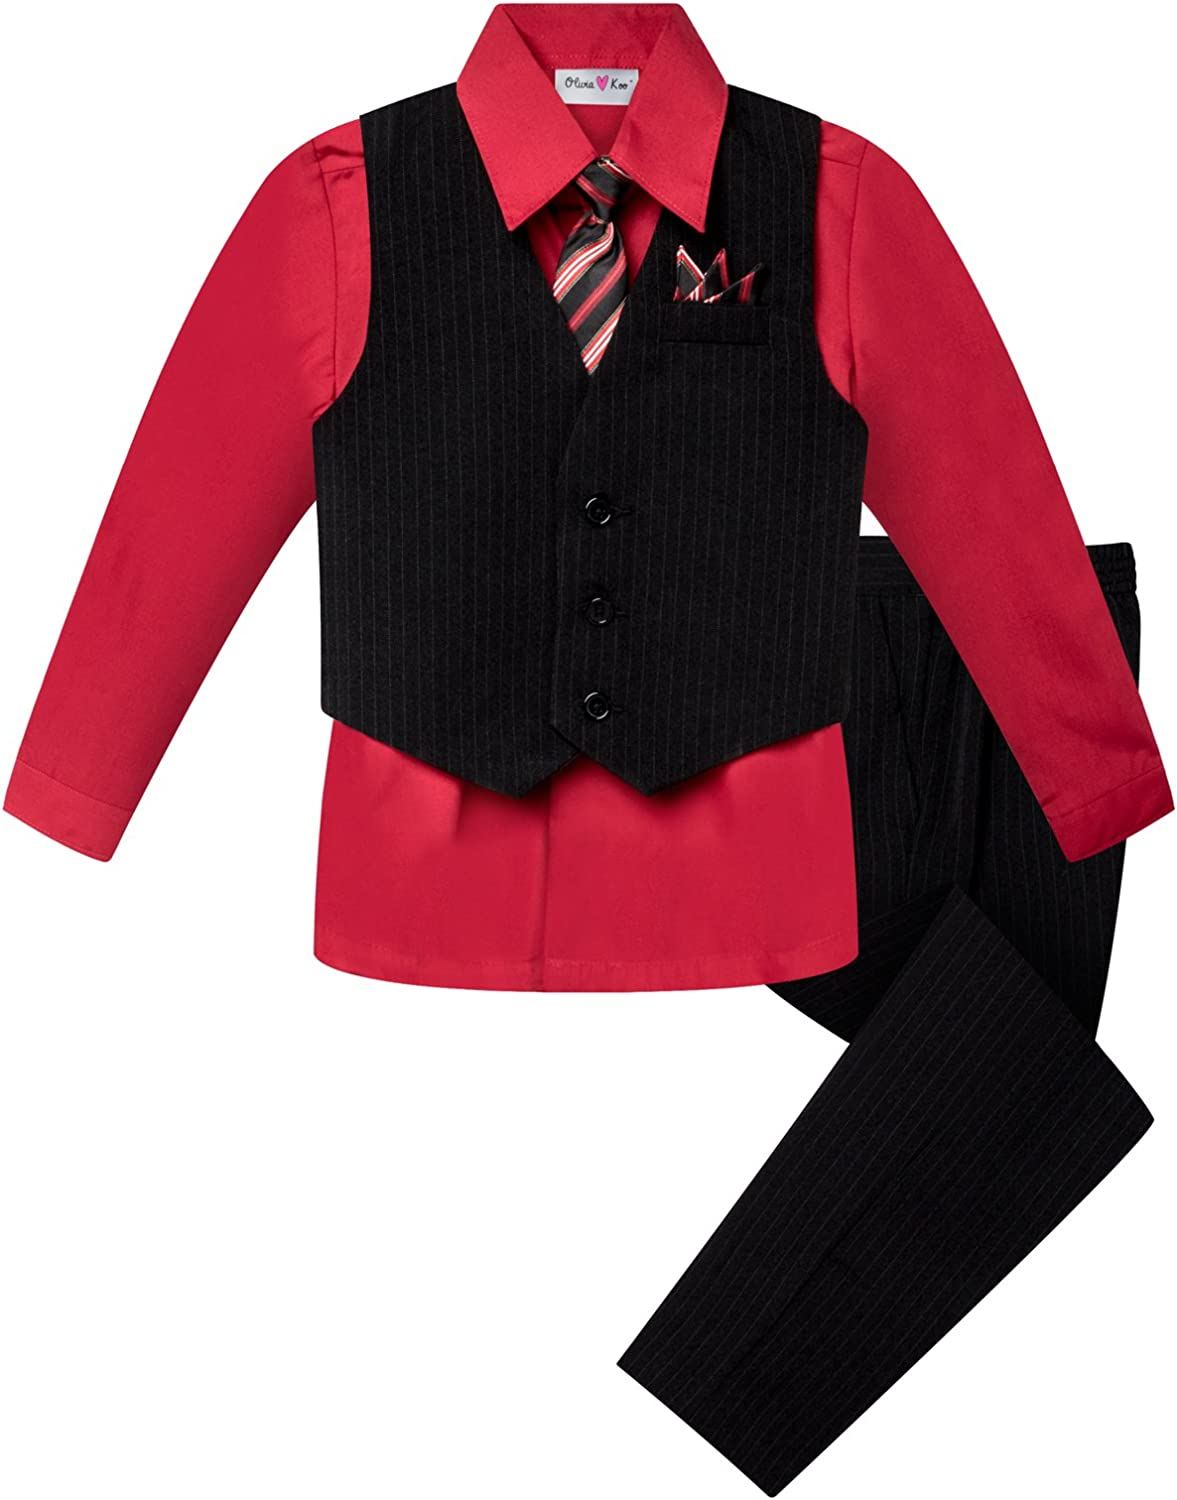 Size S to 20 OLIVIA KOO Baby and Big Boys 4 Piece Pinstripe Vest Suit Set